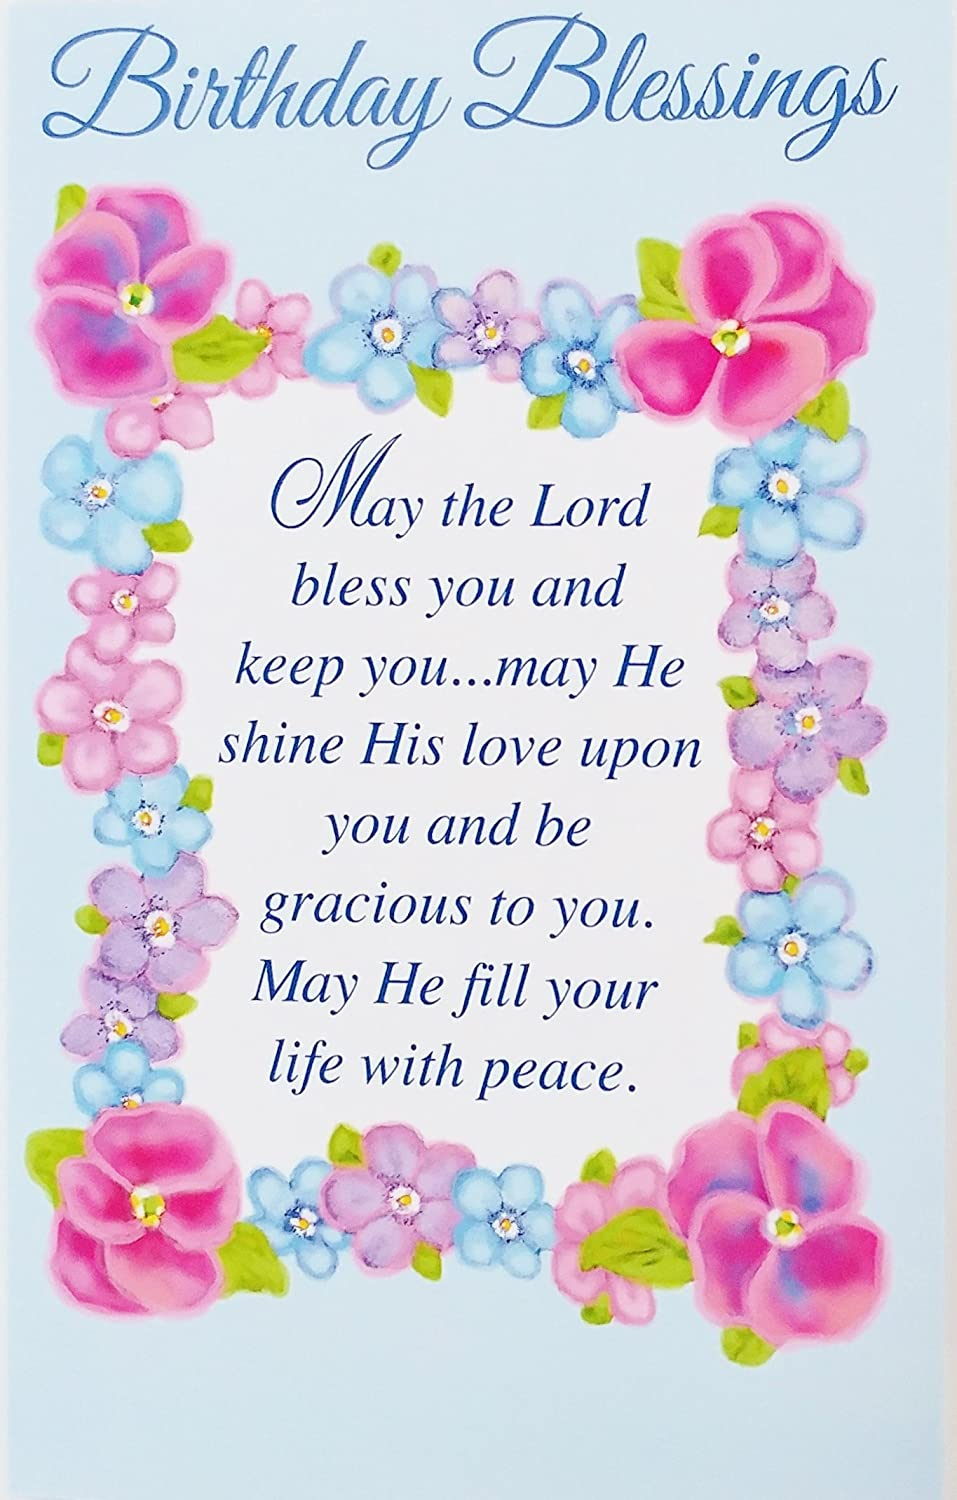 "Birthday Blessings Religious Greeting Card -""May the Lord bless you and  keep you may He shine His love upon you and be gracious to you. May He fill"